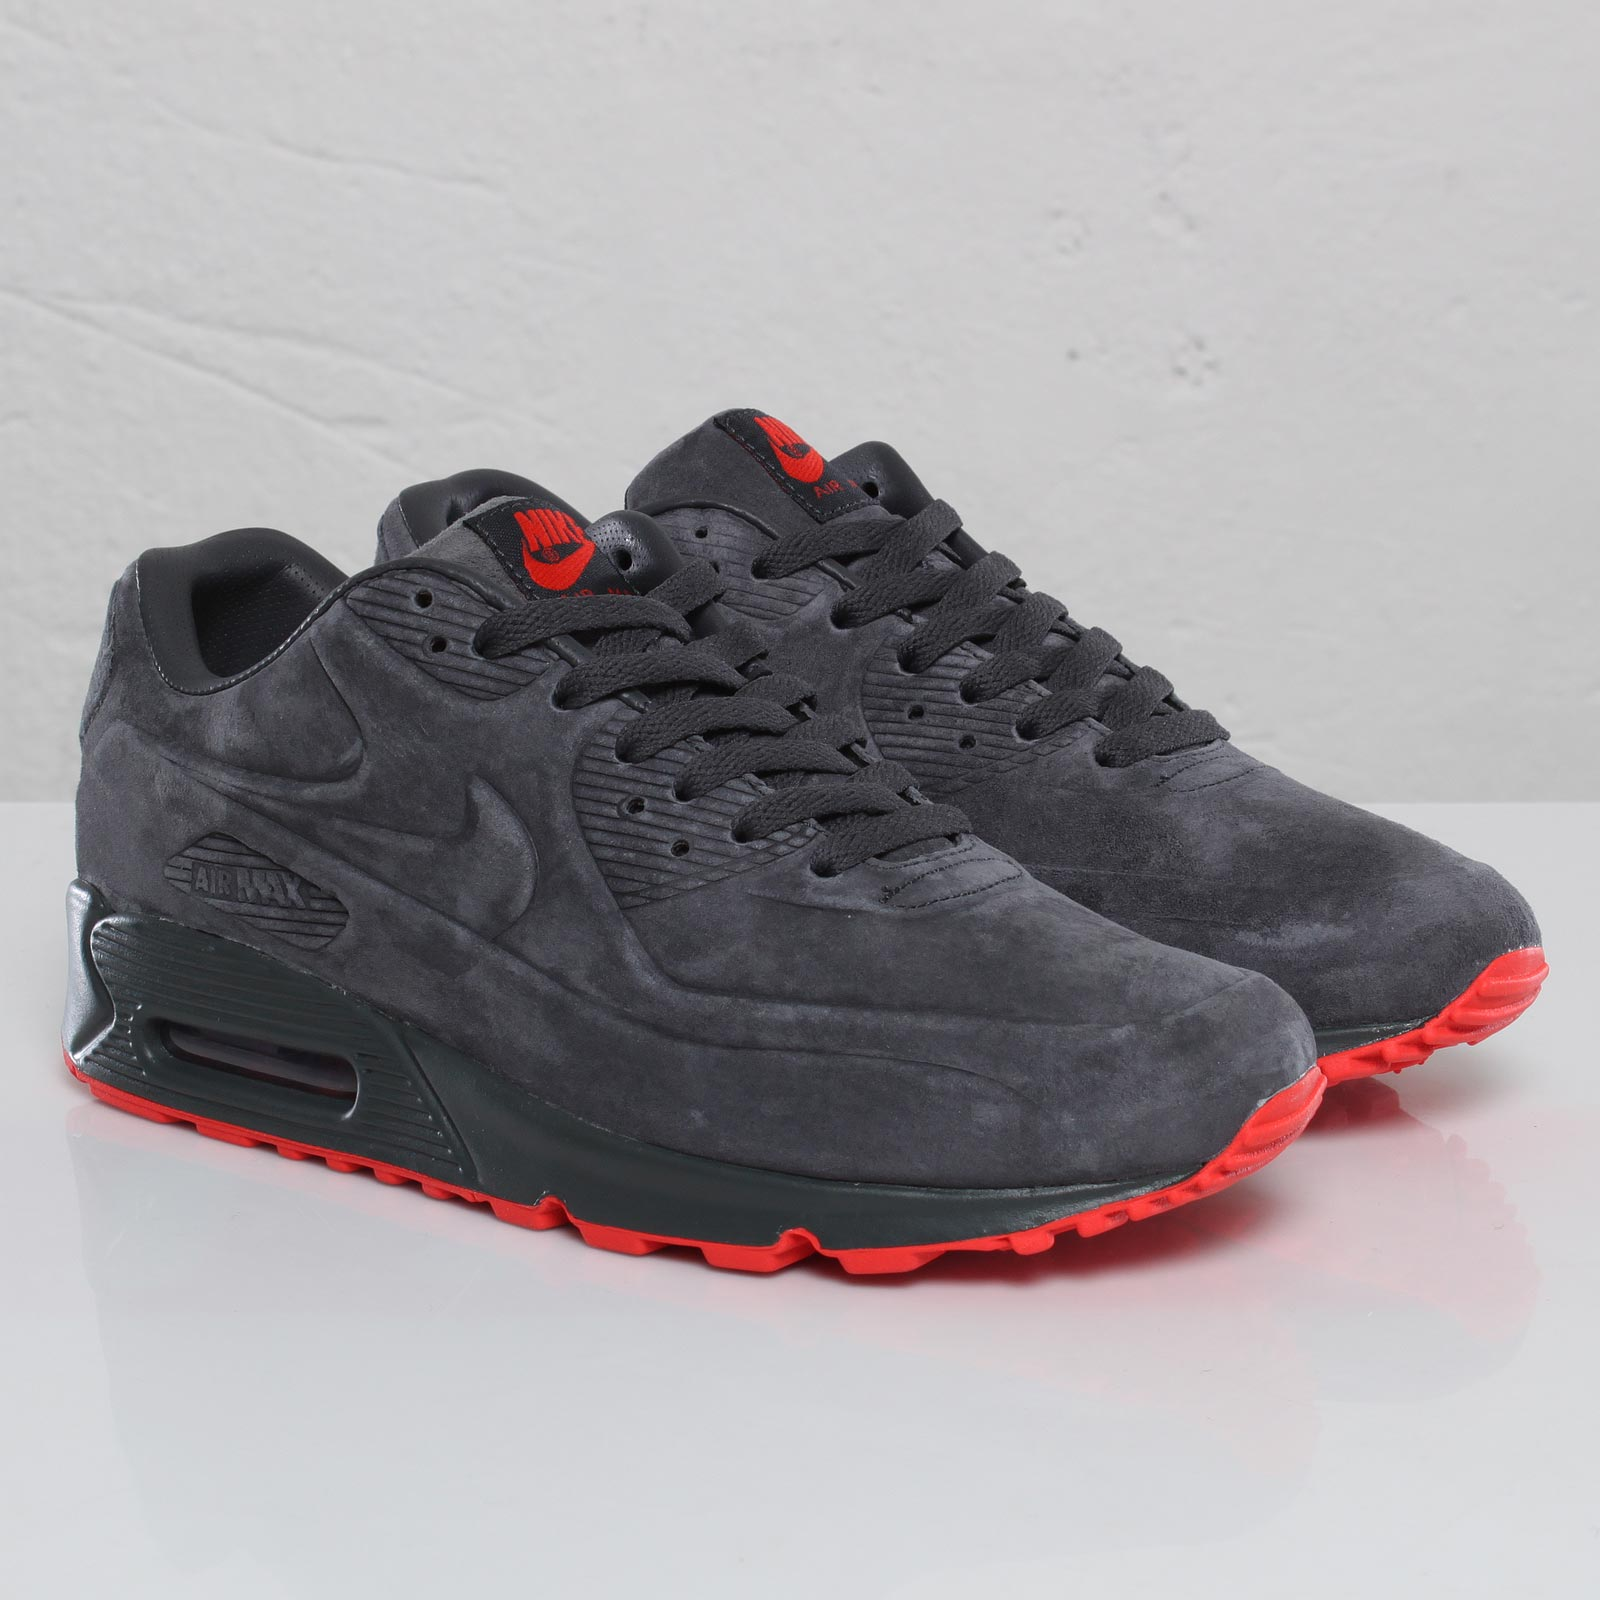 cheap price best service super quality Nike Air Max 90 VT - 102807 - Sneakersnstuff | sneakers ...